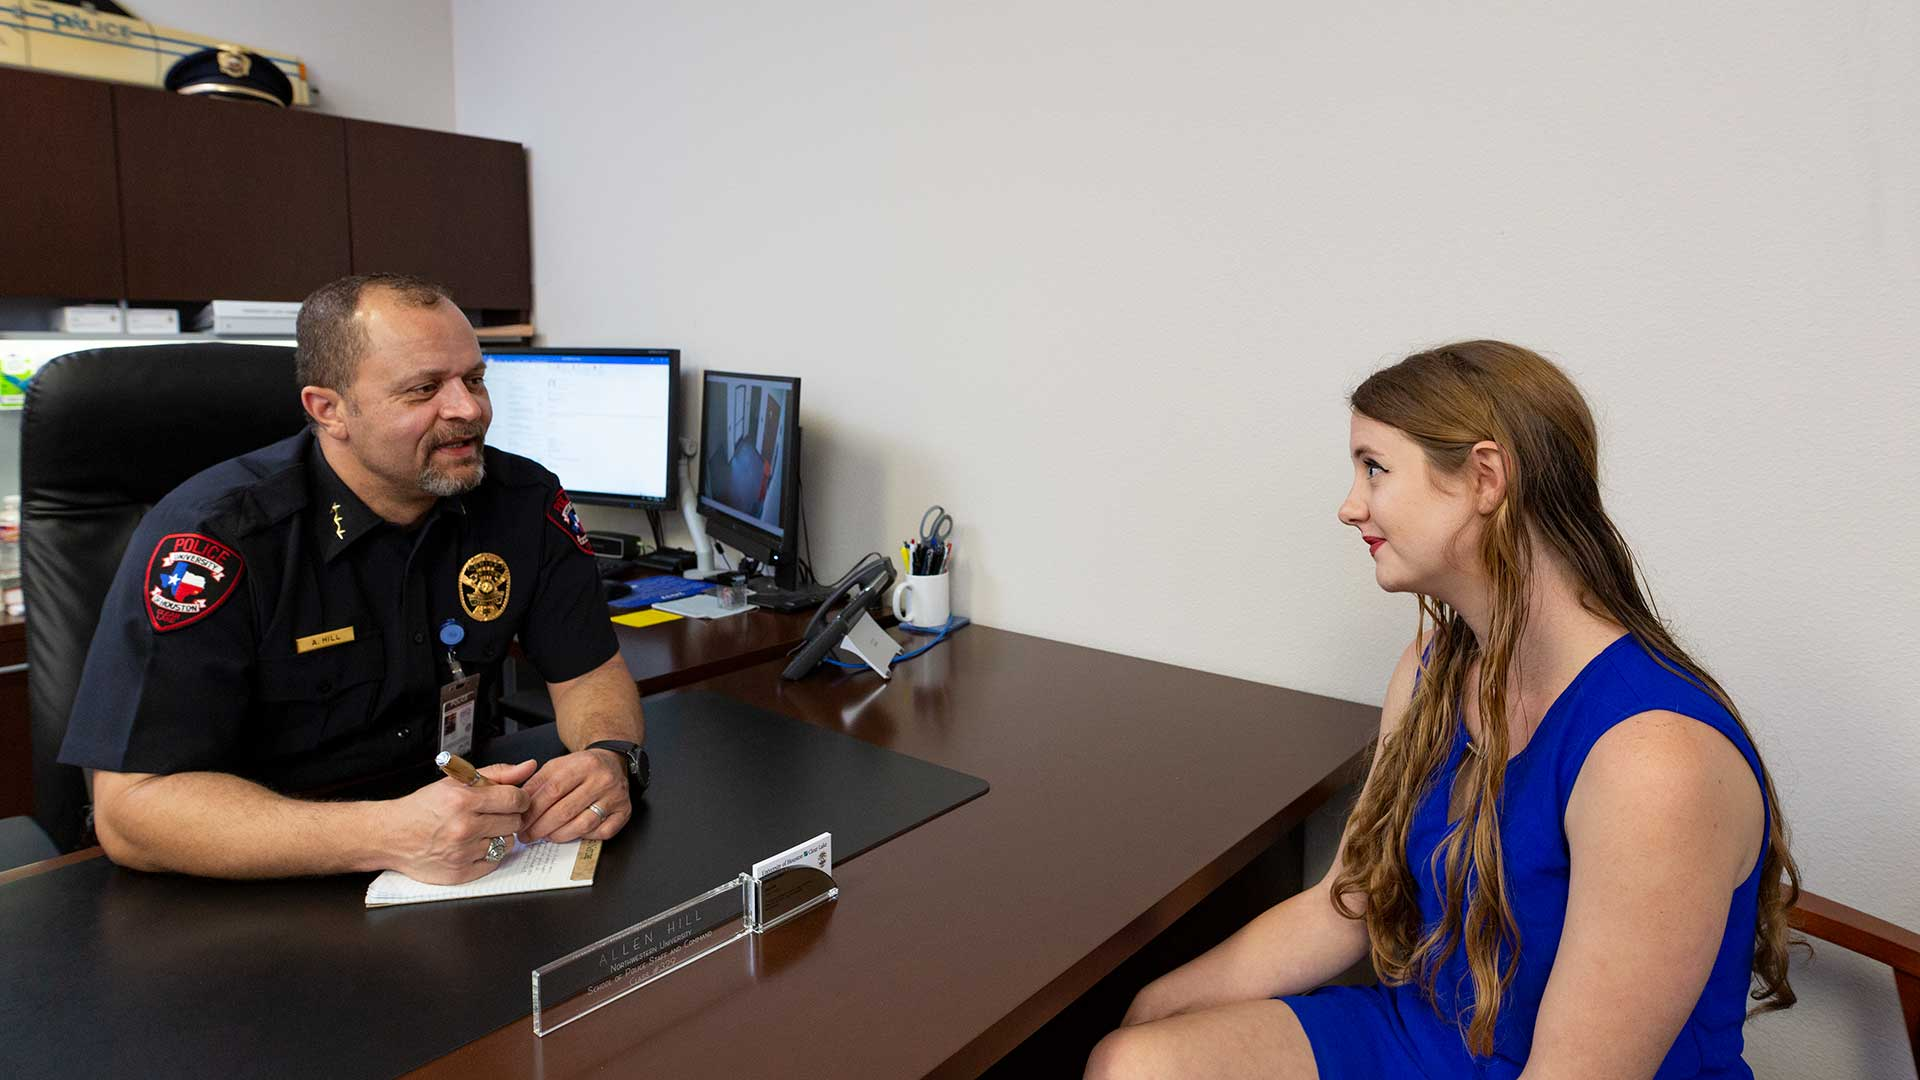 UHCL student developing protocol for police response to people with autism